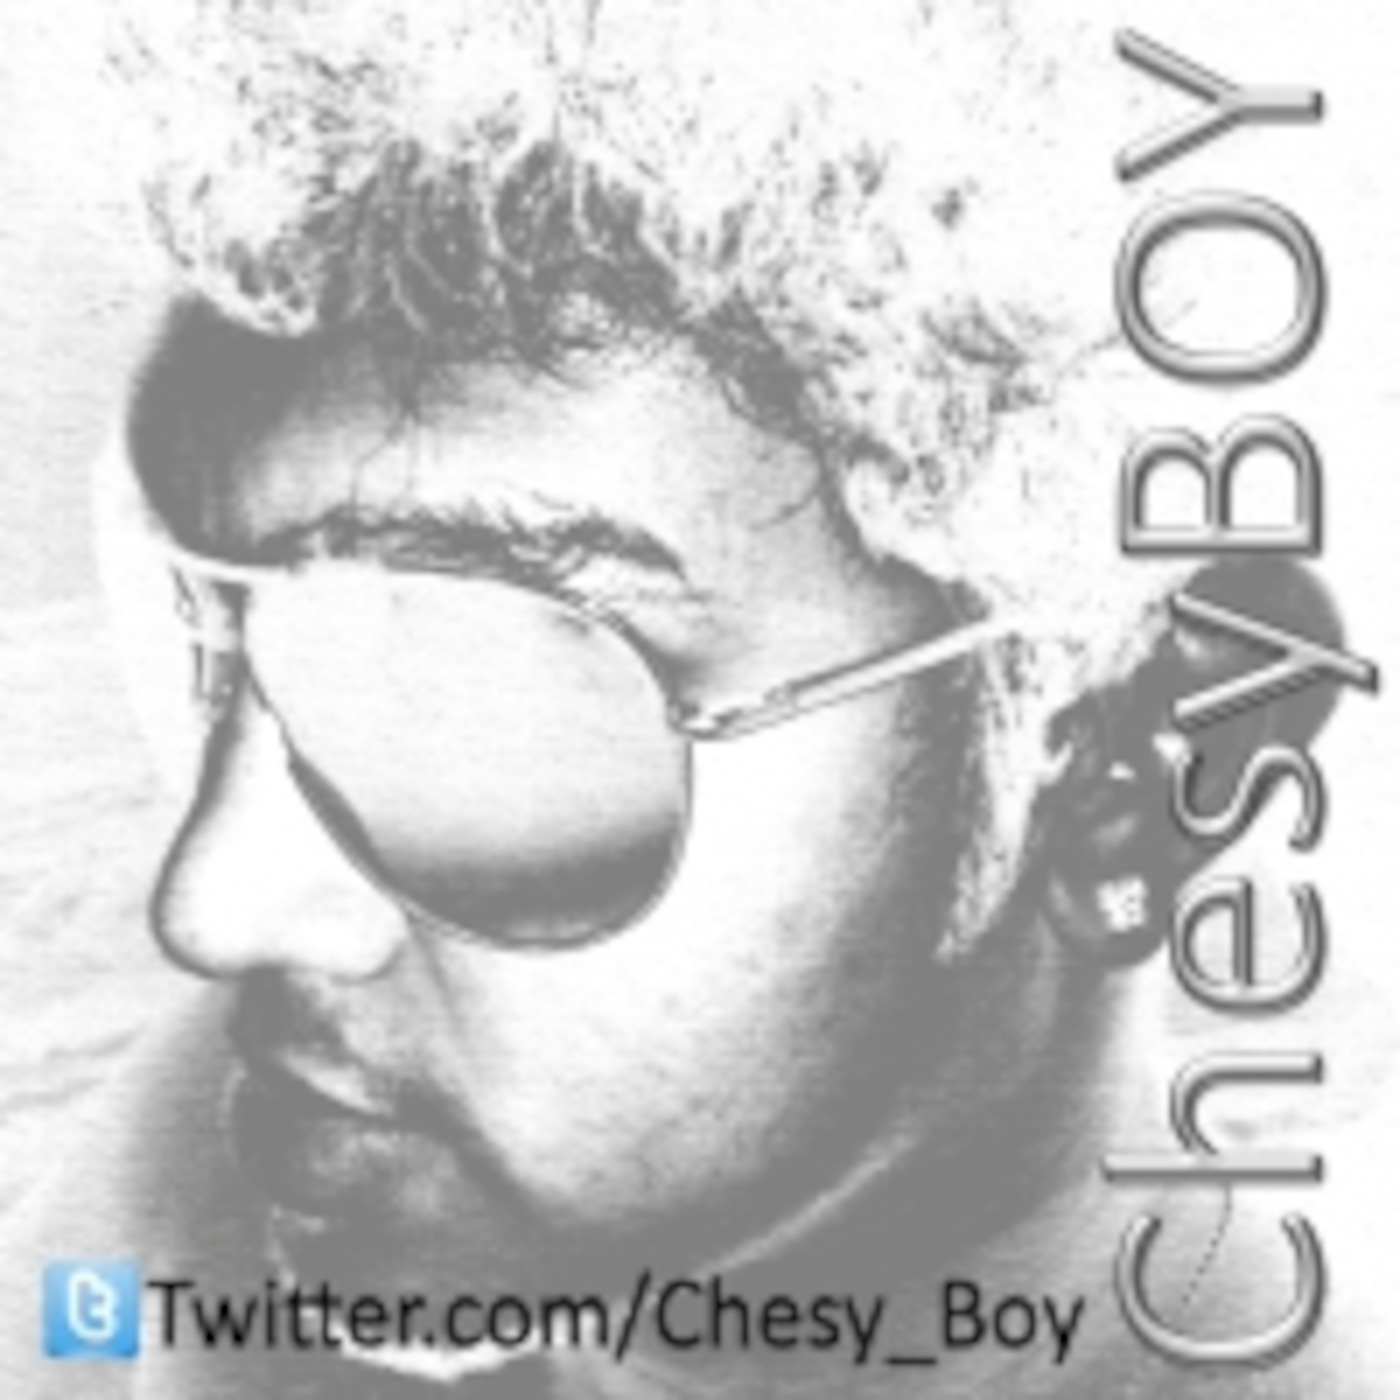 Chesy Boy